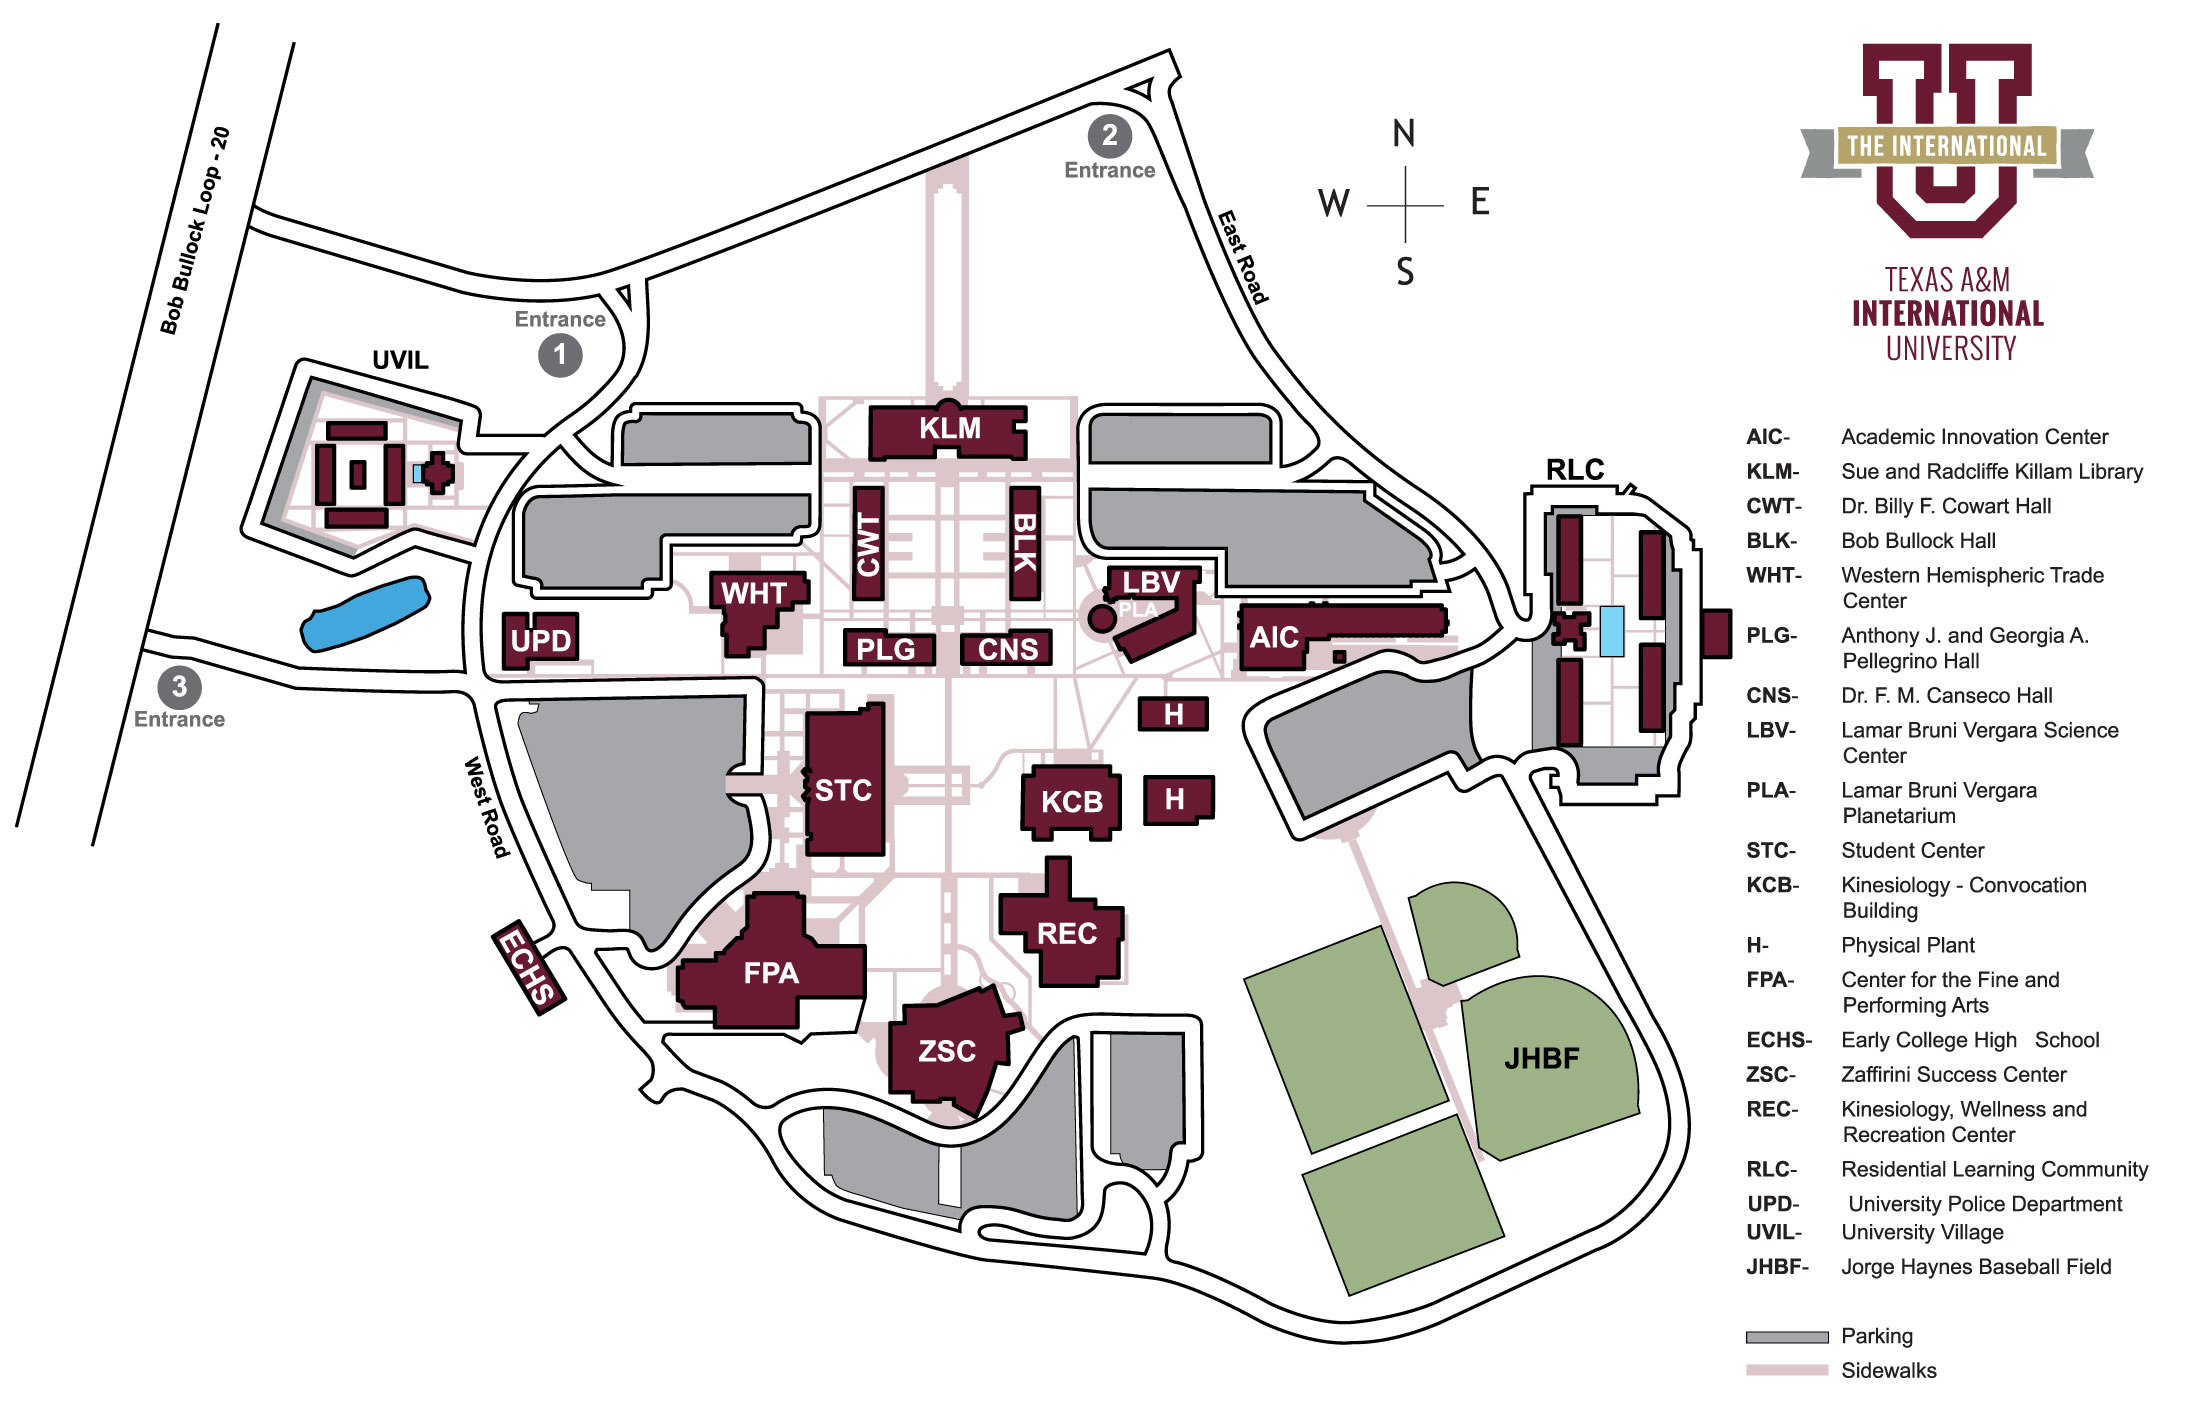 TAMIU Map on u texas commencement, ut austin building map, u of arizona campus map, u albany campus map, u pitt campus map, university of texas map, u texas computer science, u new haven campus map, u of idaho campus map, u texas map network drive,